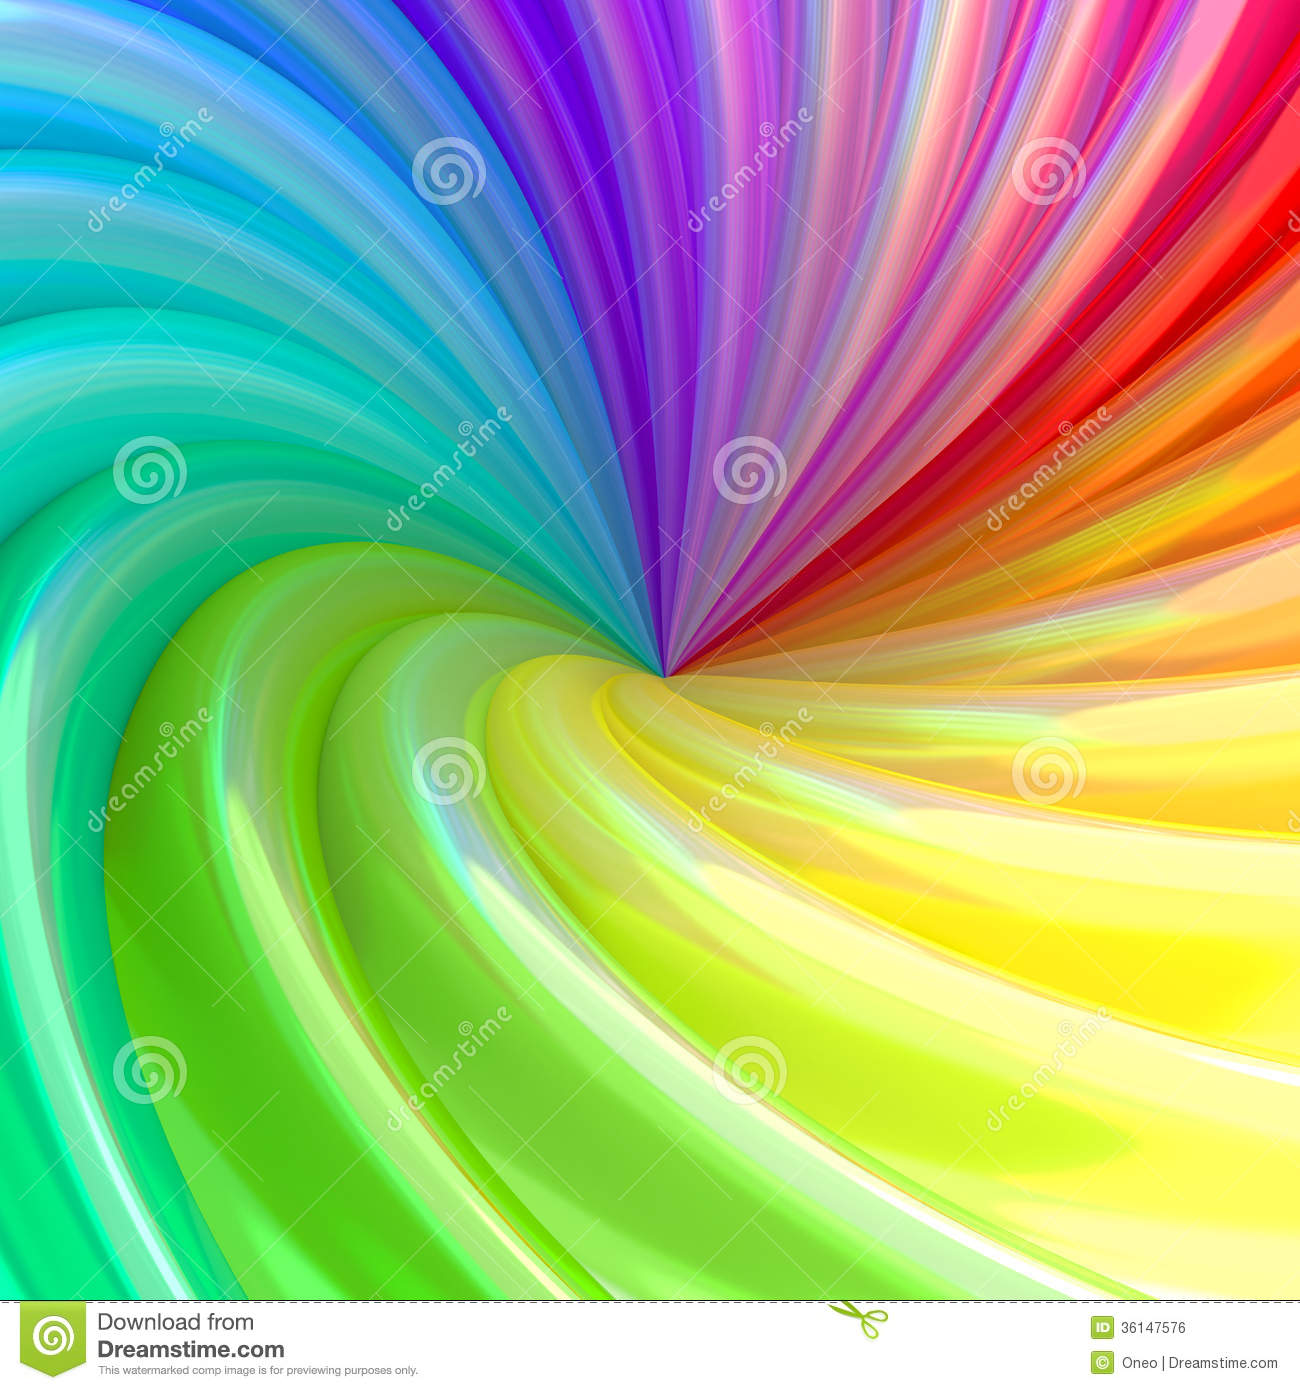 Abstract Background Of Colorful Swirl Pipes Stock